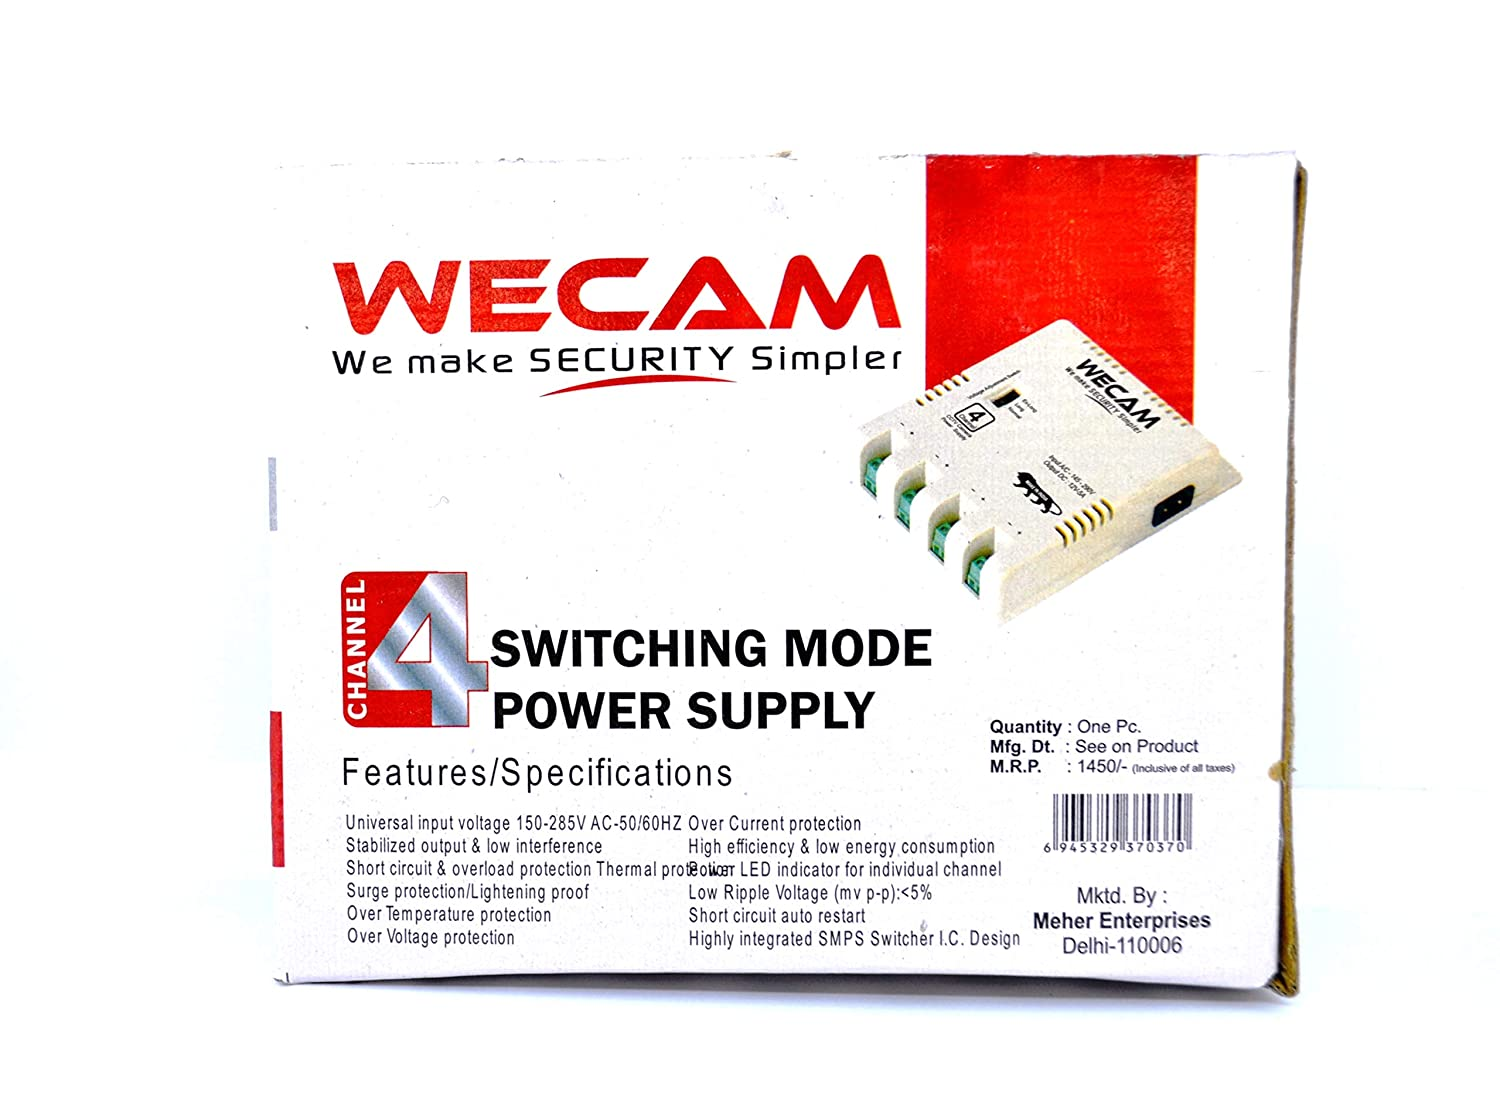 Buy Wecam 4 Camera Smps 12 Volt 5 Amps 1 Yr Protectors Circuit On Power Supply Replacement Guaranty Online At Low Prices In India Reviews Ratings